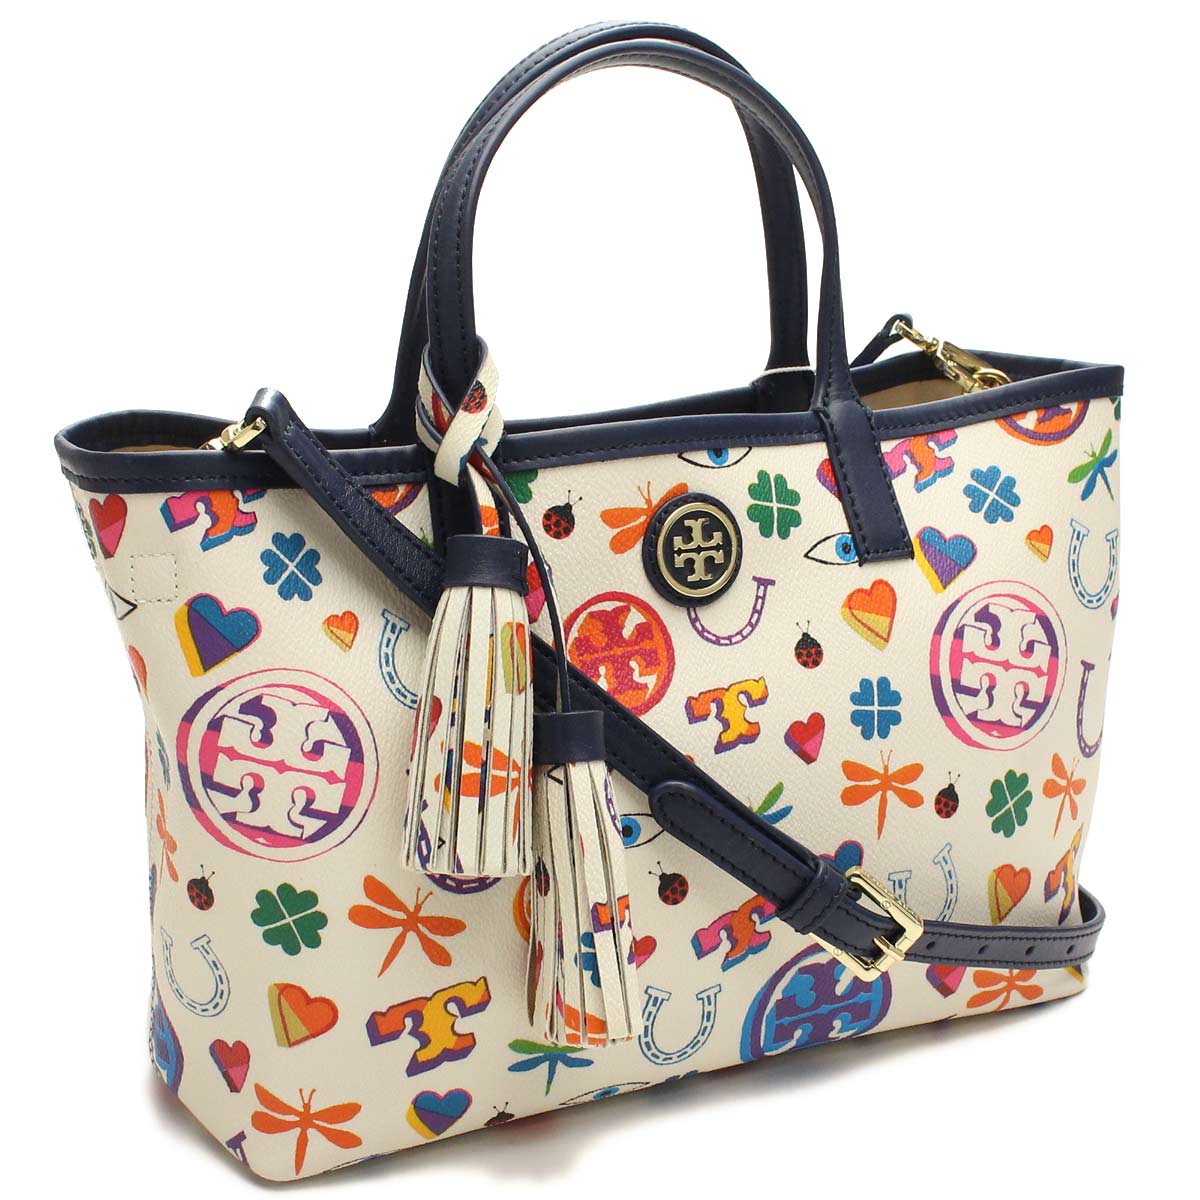 9ecf716e796 Bighit The total brand wholesale  Tory Burch (TORY BURCH) tote bag  41149509-960 NEW IVORY LUCK PRINT white series multi-color( taxfree send by  ...